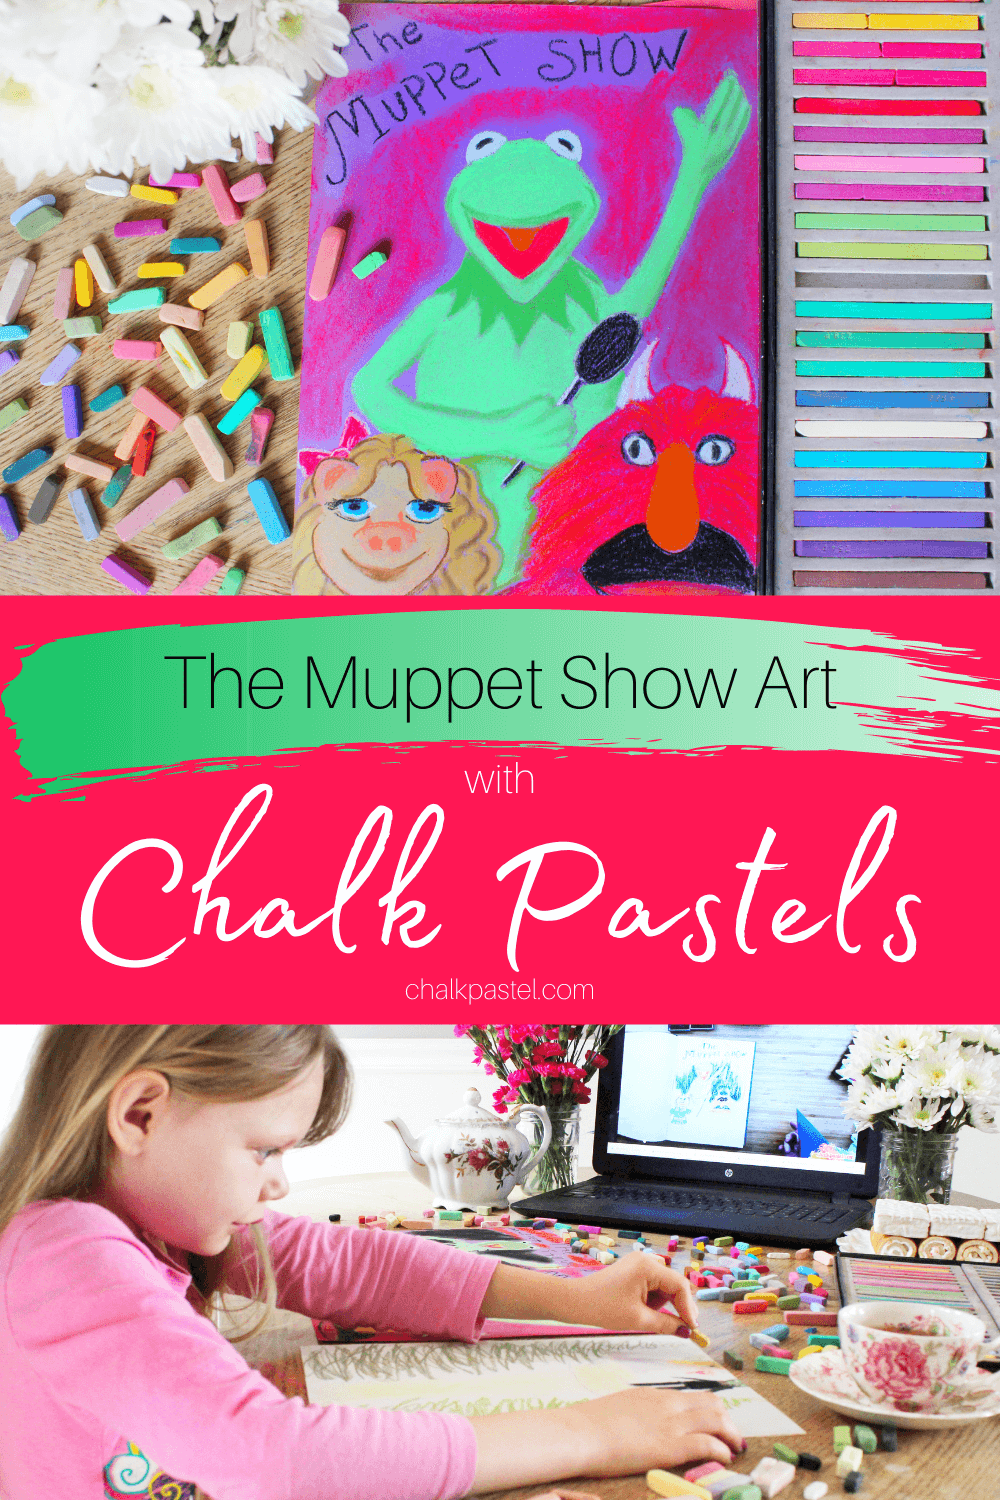 The Muppet Show with Chalk Pastels: Celebrate the release of The Muppet Show with chalk pastels! That's right Kermit the Frog, and Miss Piggy are taking center stage with Nana and her chalk pastel lessons! #chalkpastels #chalkpastelsatthemovies #TheMuppets #TheMuppetShow #Muppets #KermittheFrog #Kermit #MuppetShow #chalkpastelvideo #artlesson